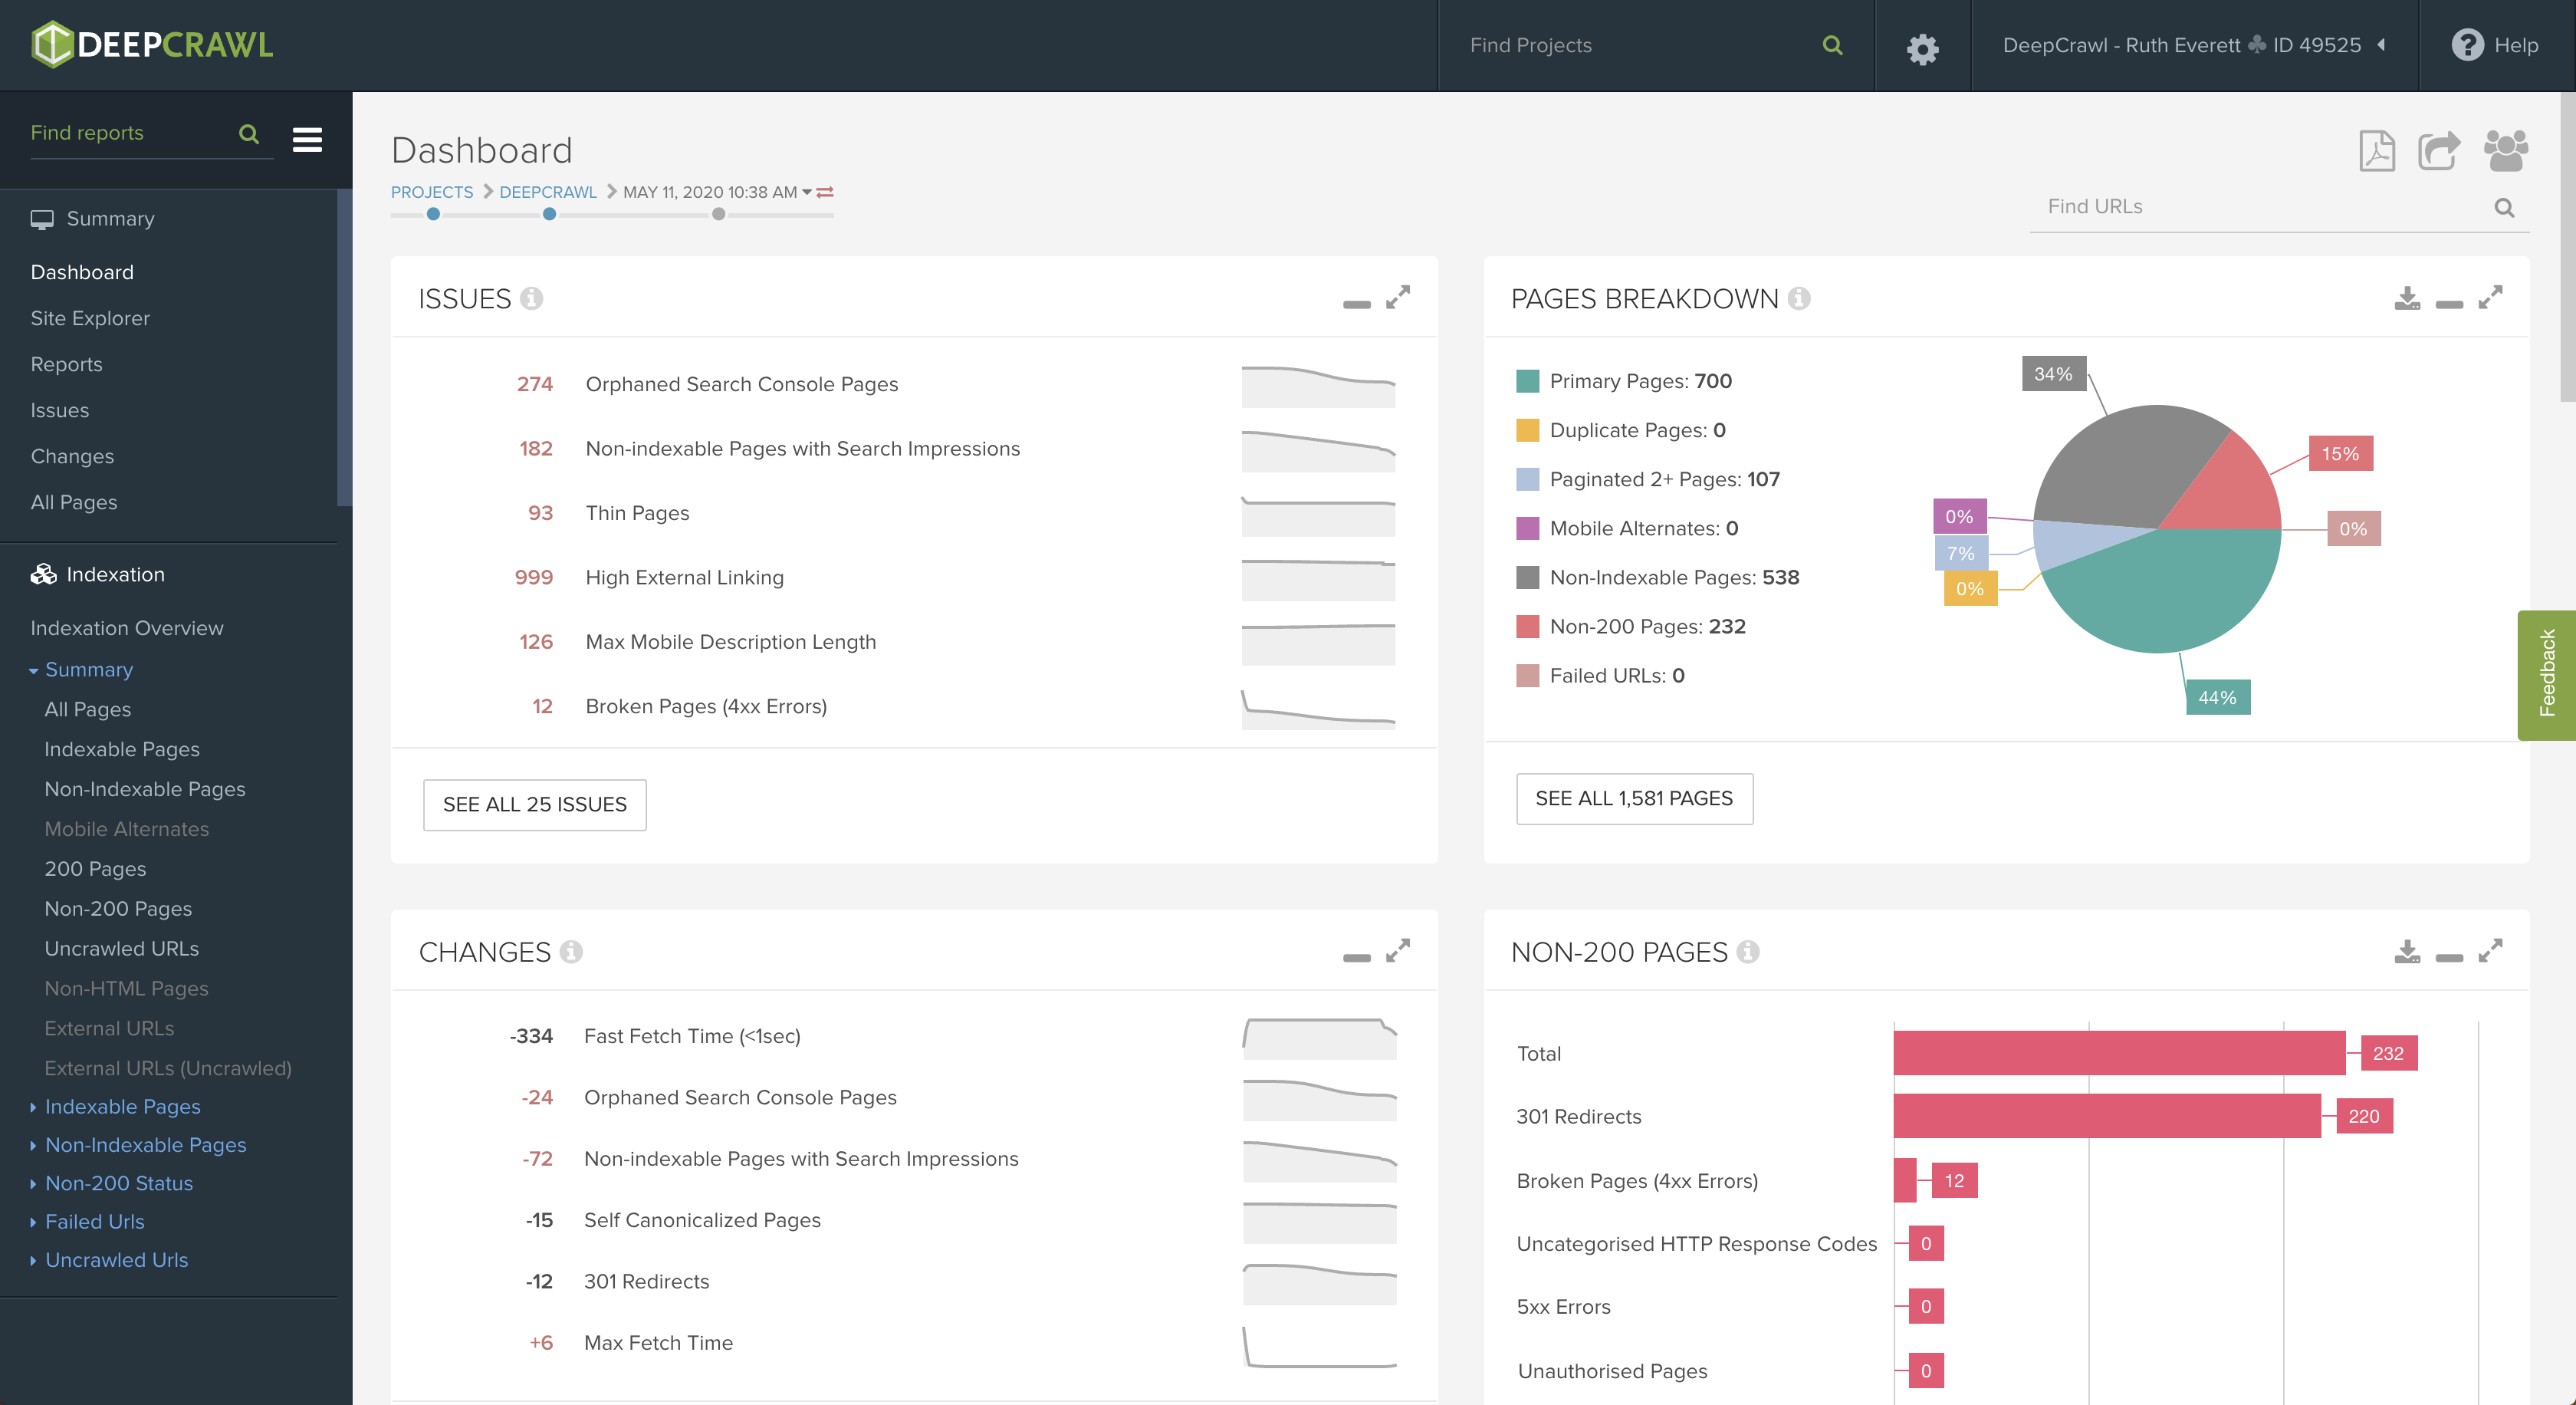 See all your crawl data, analytics, and actionable insights in one powerful, easy-to-use, enterprise-scale platform.